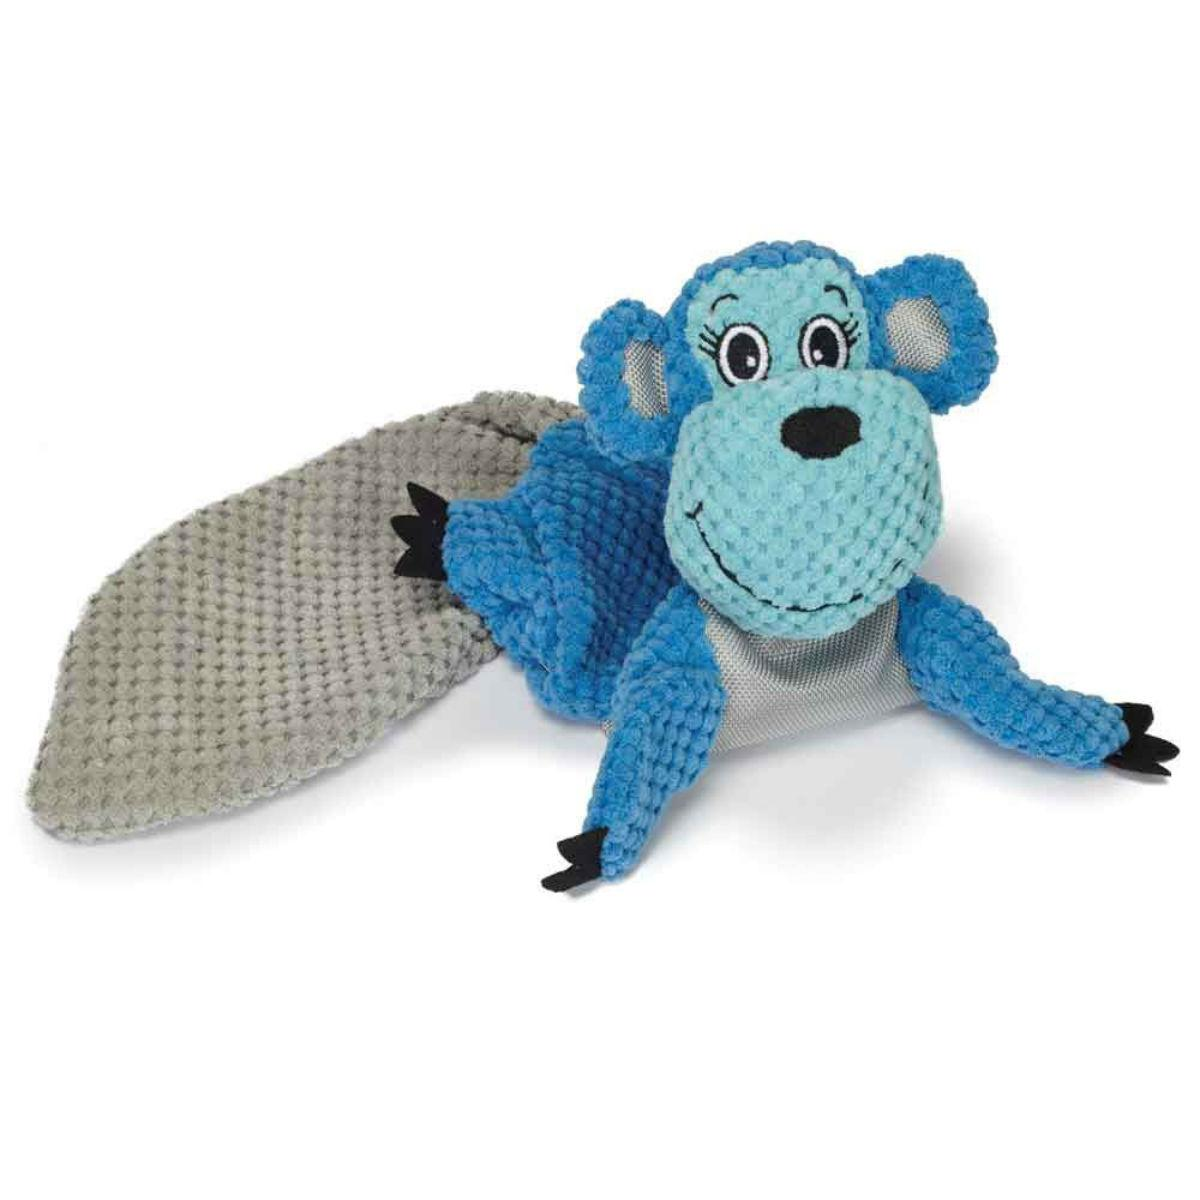 Play 365 Crinkle Flatty Dog Toy - Monkey